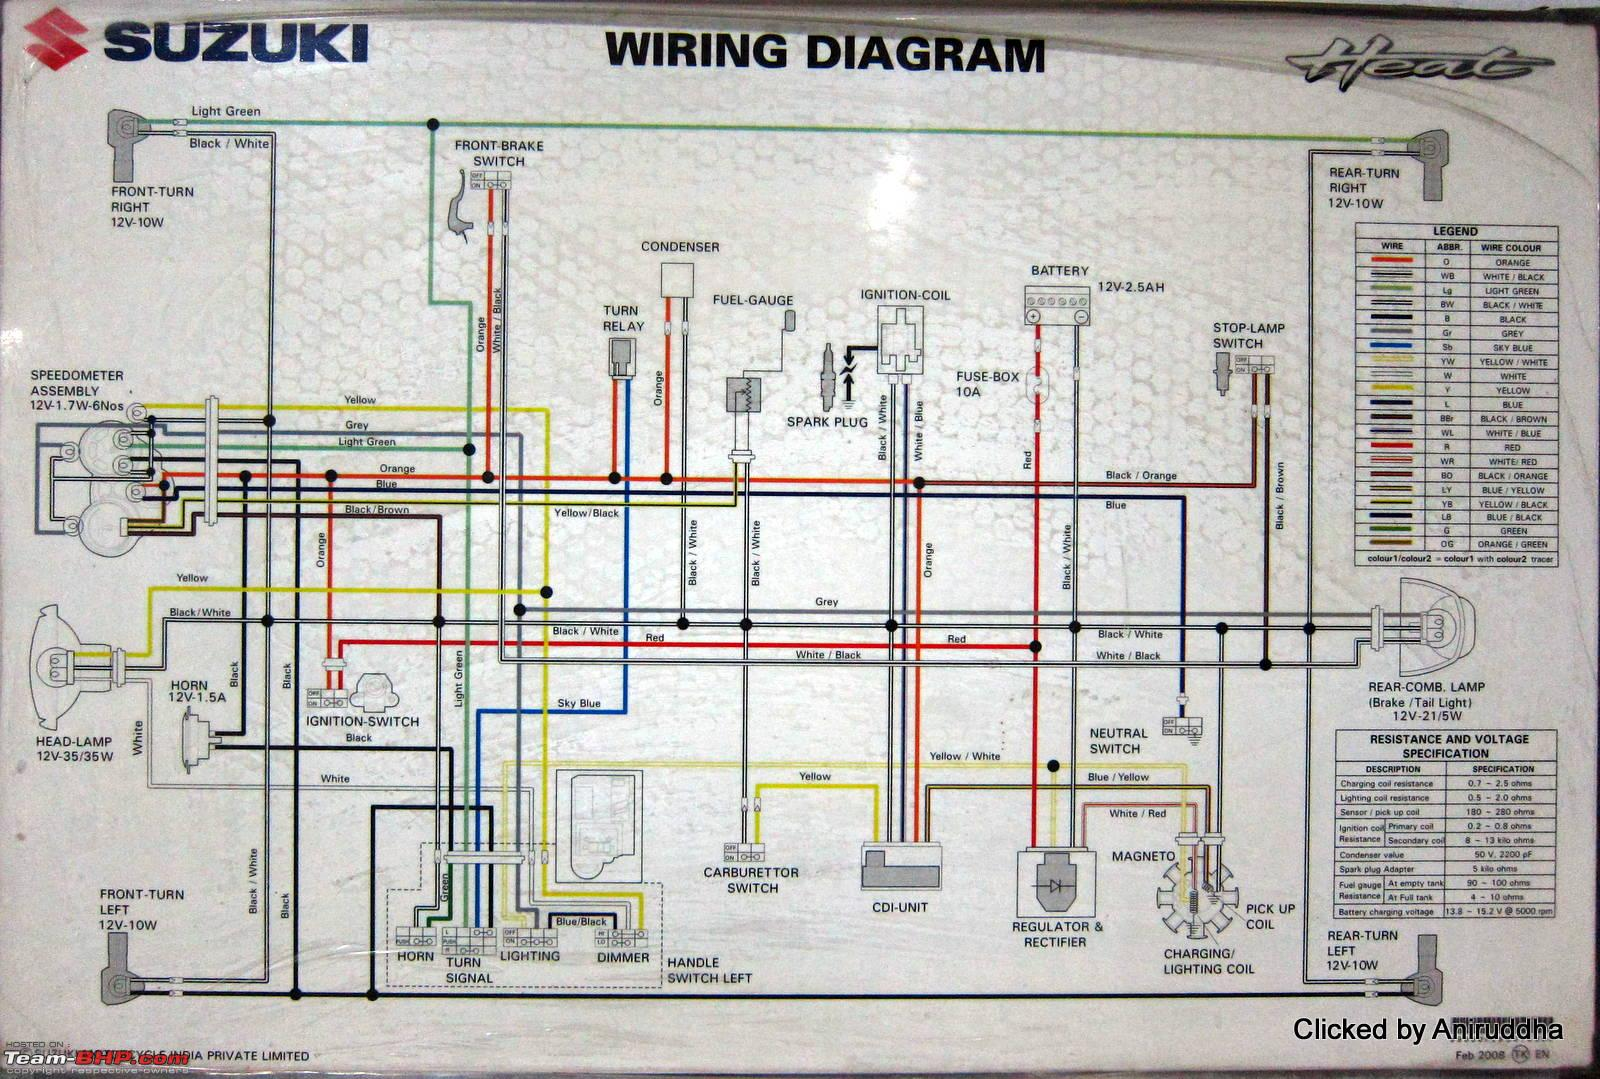 887405d1329132985 circuit diagrams indian motorcycles scooters img_0728?resize\\=1600%2C1079 100 [ zx9r 2002 service manual ] user manual and guide download wiring diagram for victory motorcycles at bayanpartner.co